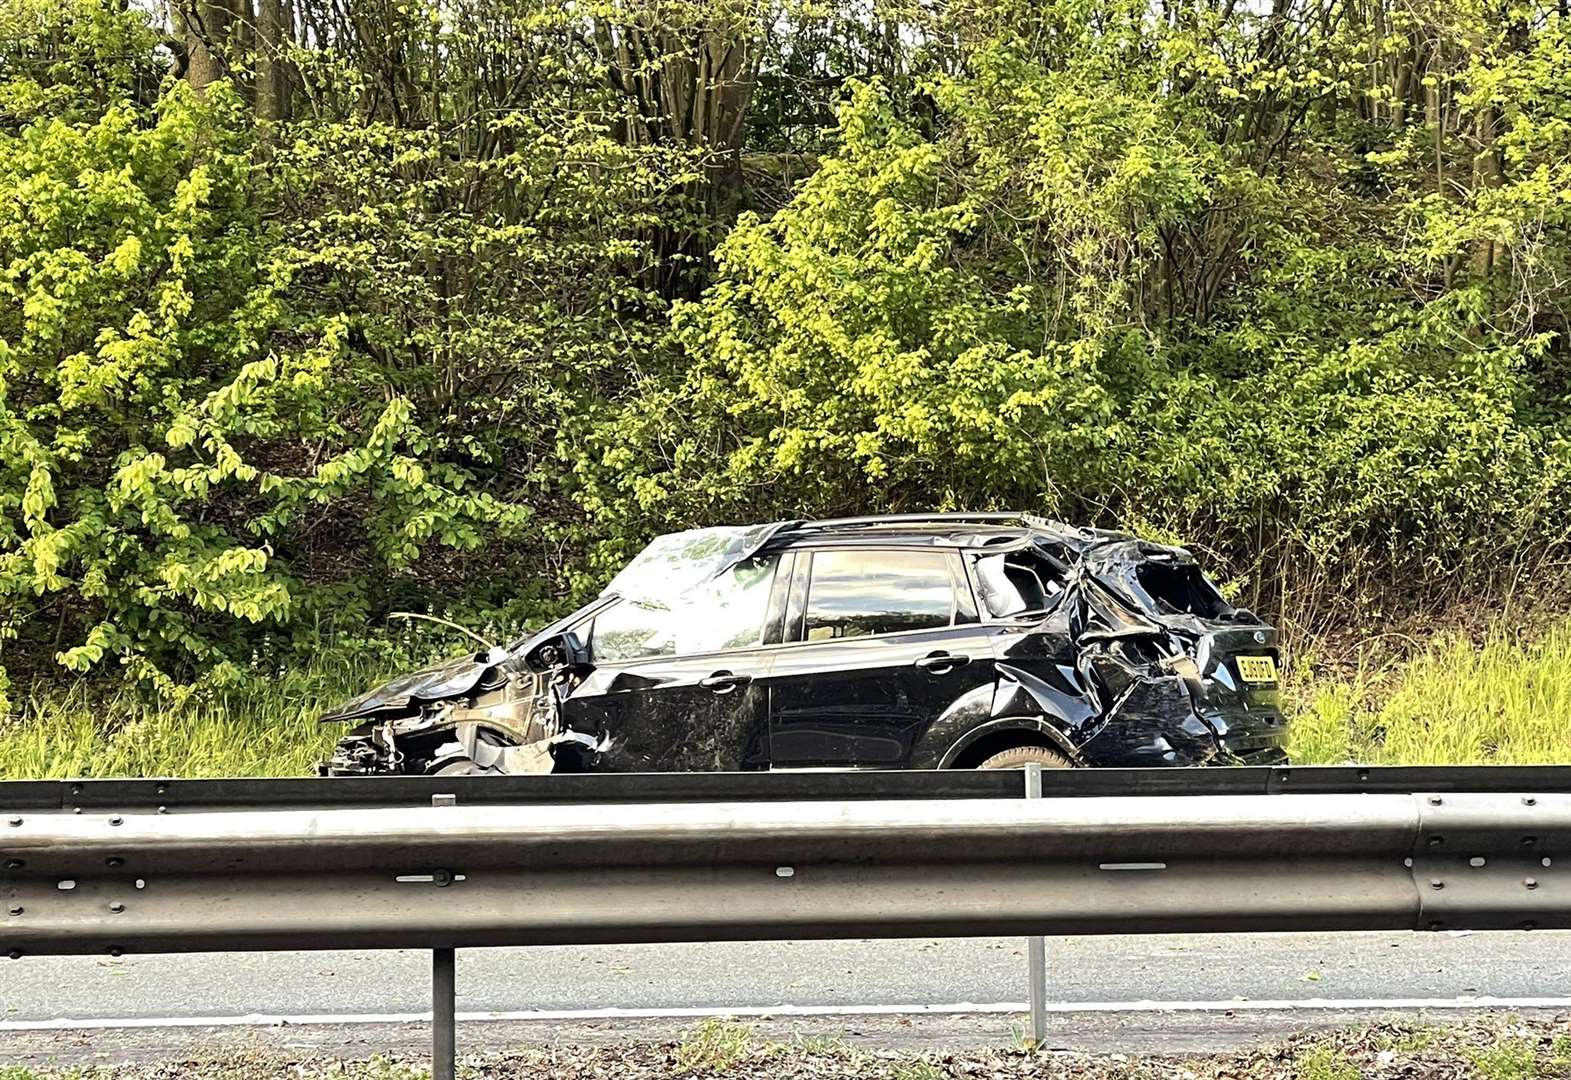 Traffic held on M2 after crash